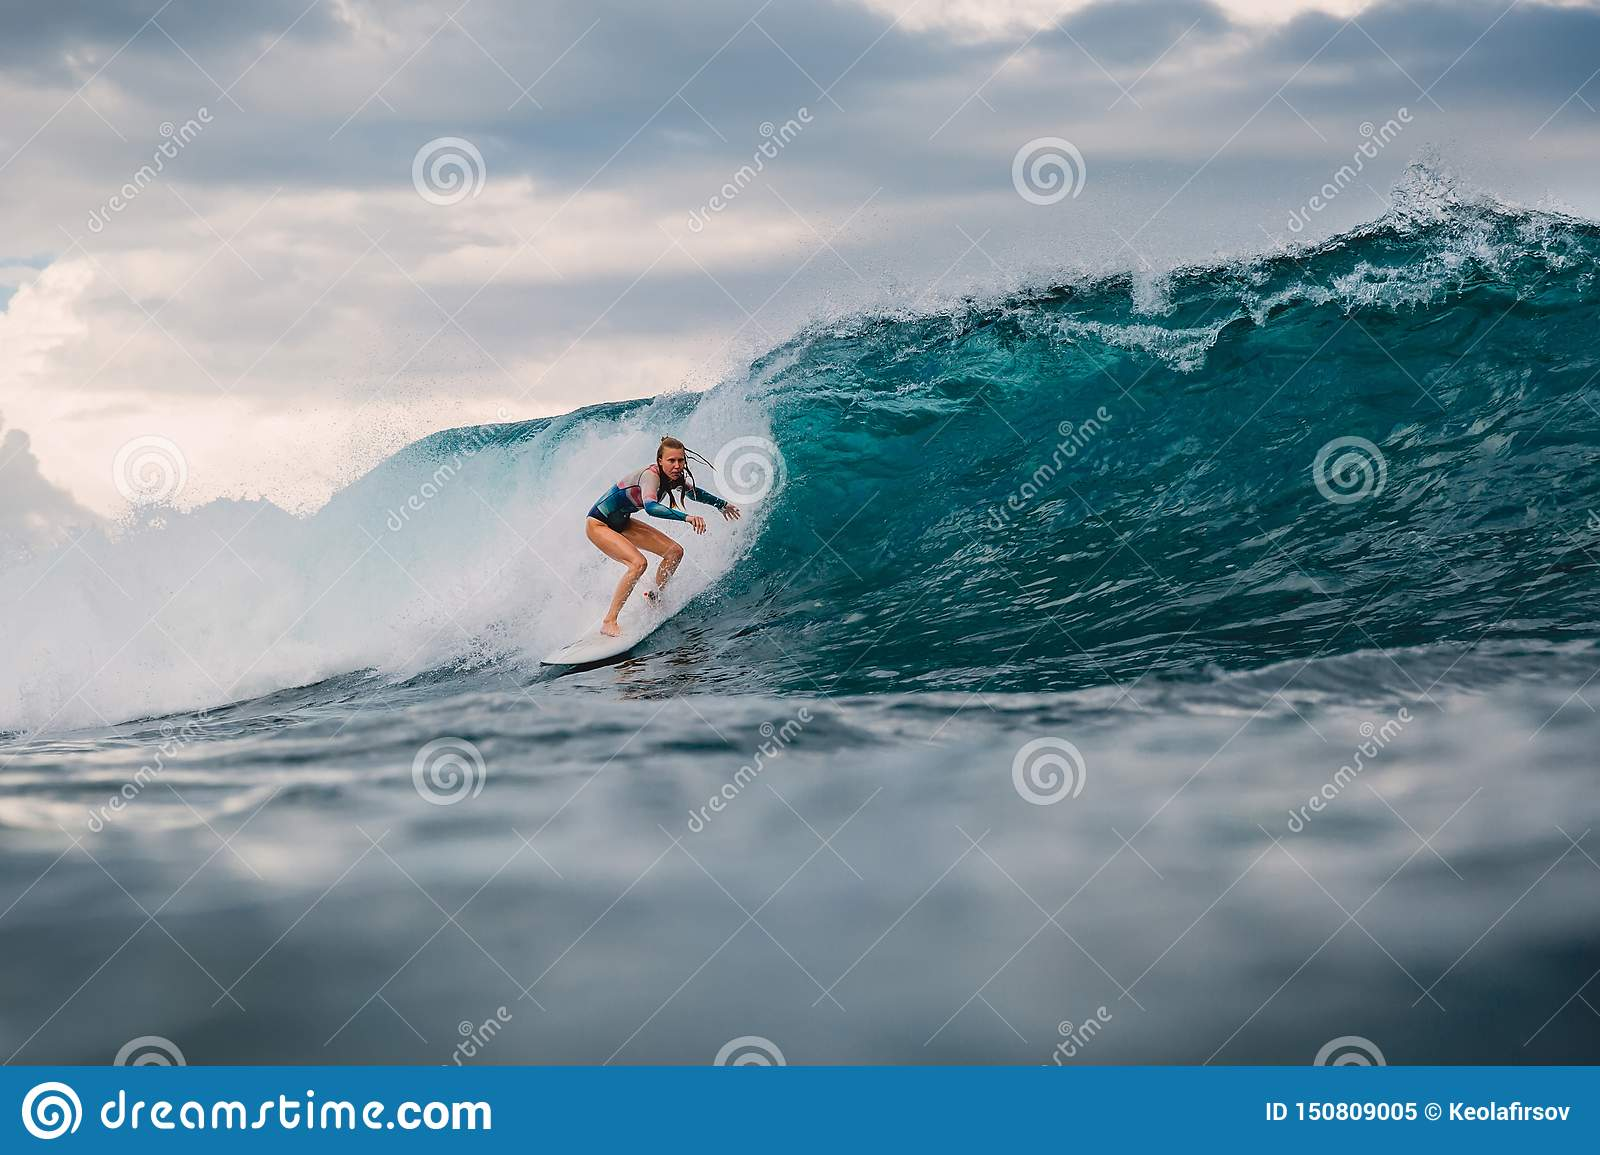 Surf girl on surfboard. Surfer woman and blue wave